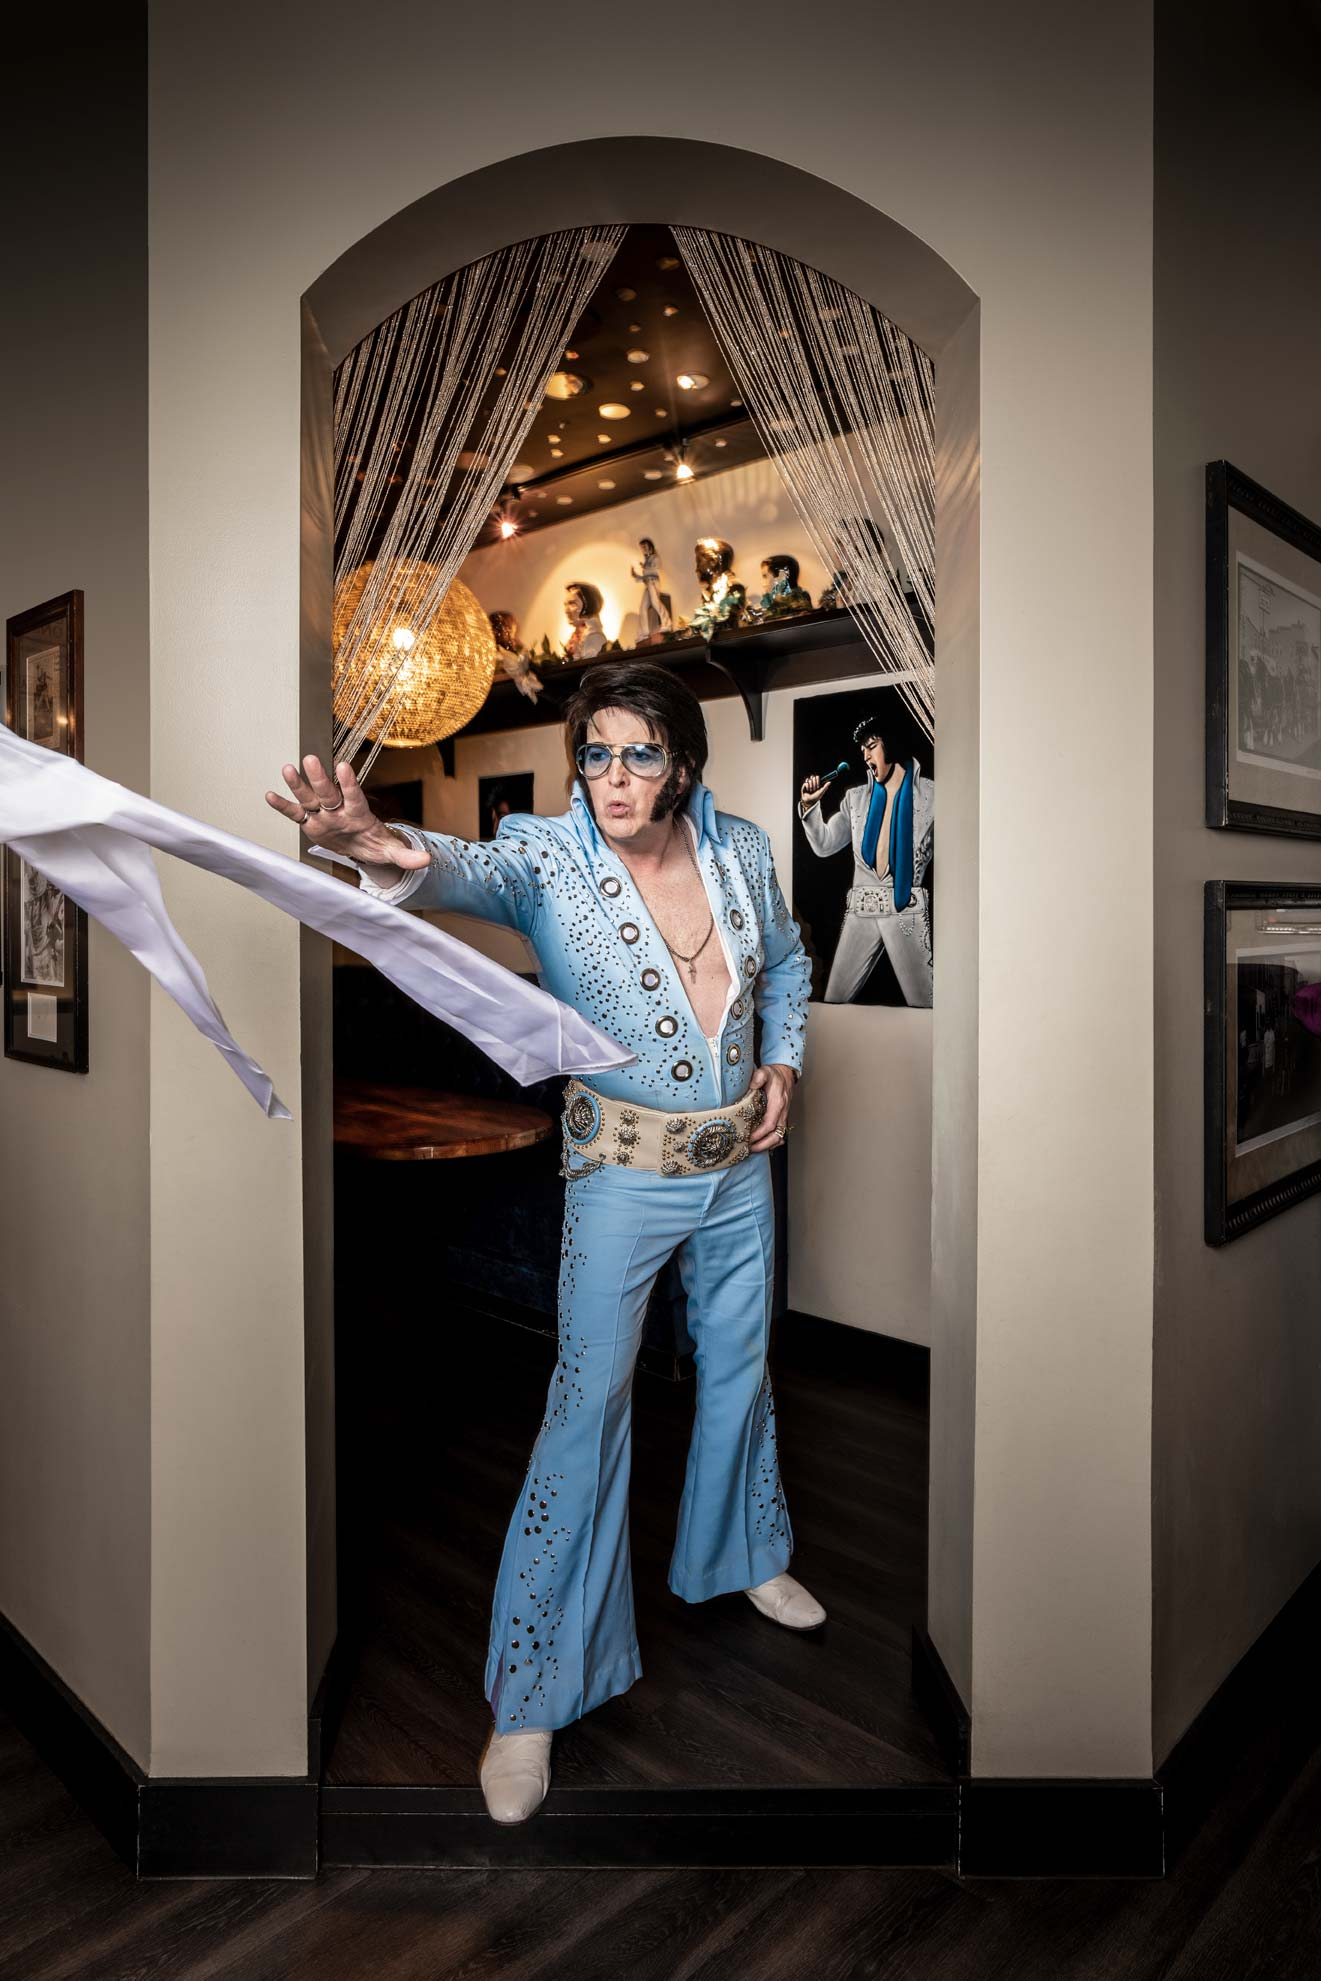 Elvis impersonator Jed Duvall standing in a doorway throwing a scarf